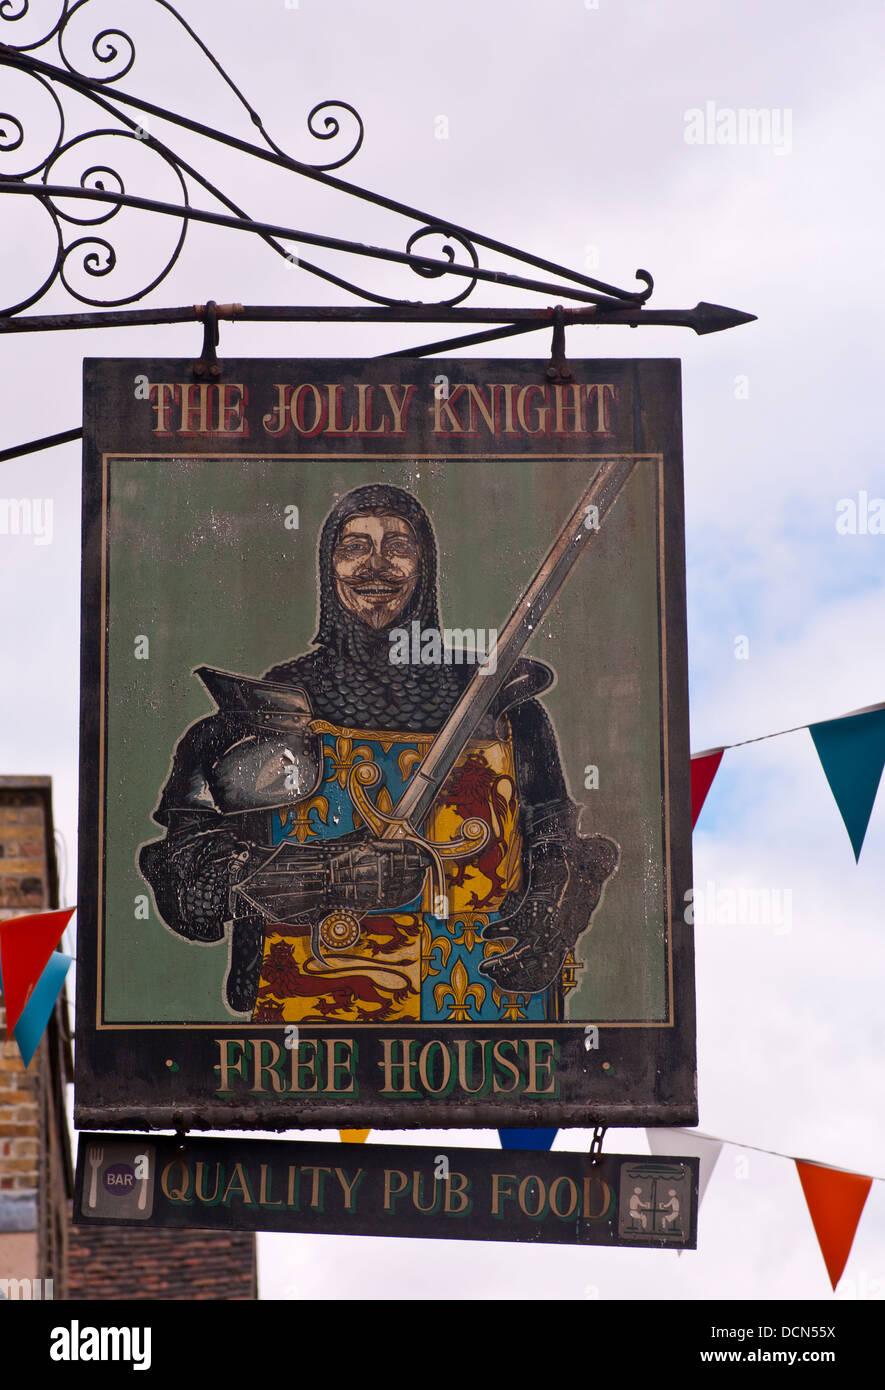 The Jolly Knight Free House Pub Sign UK - Stock Image